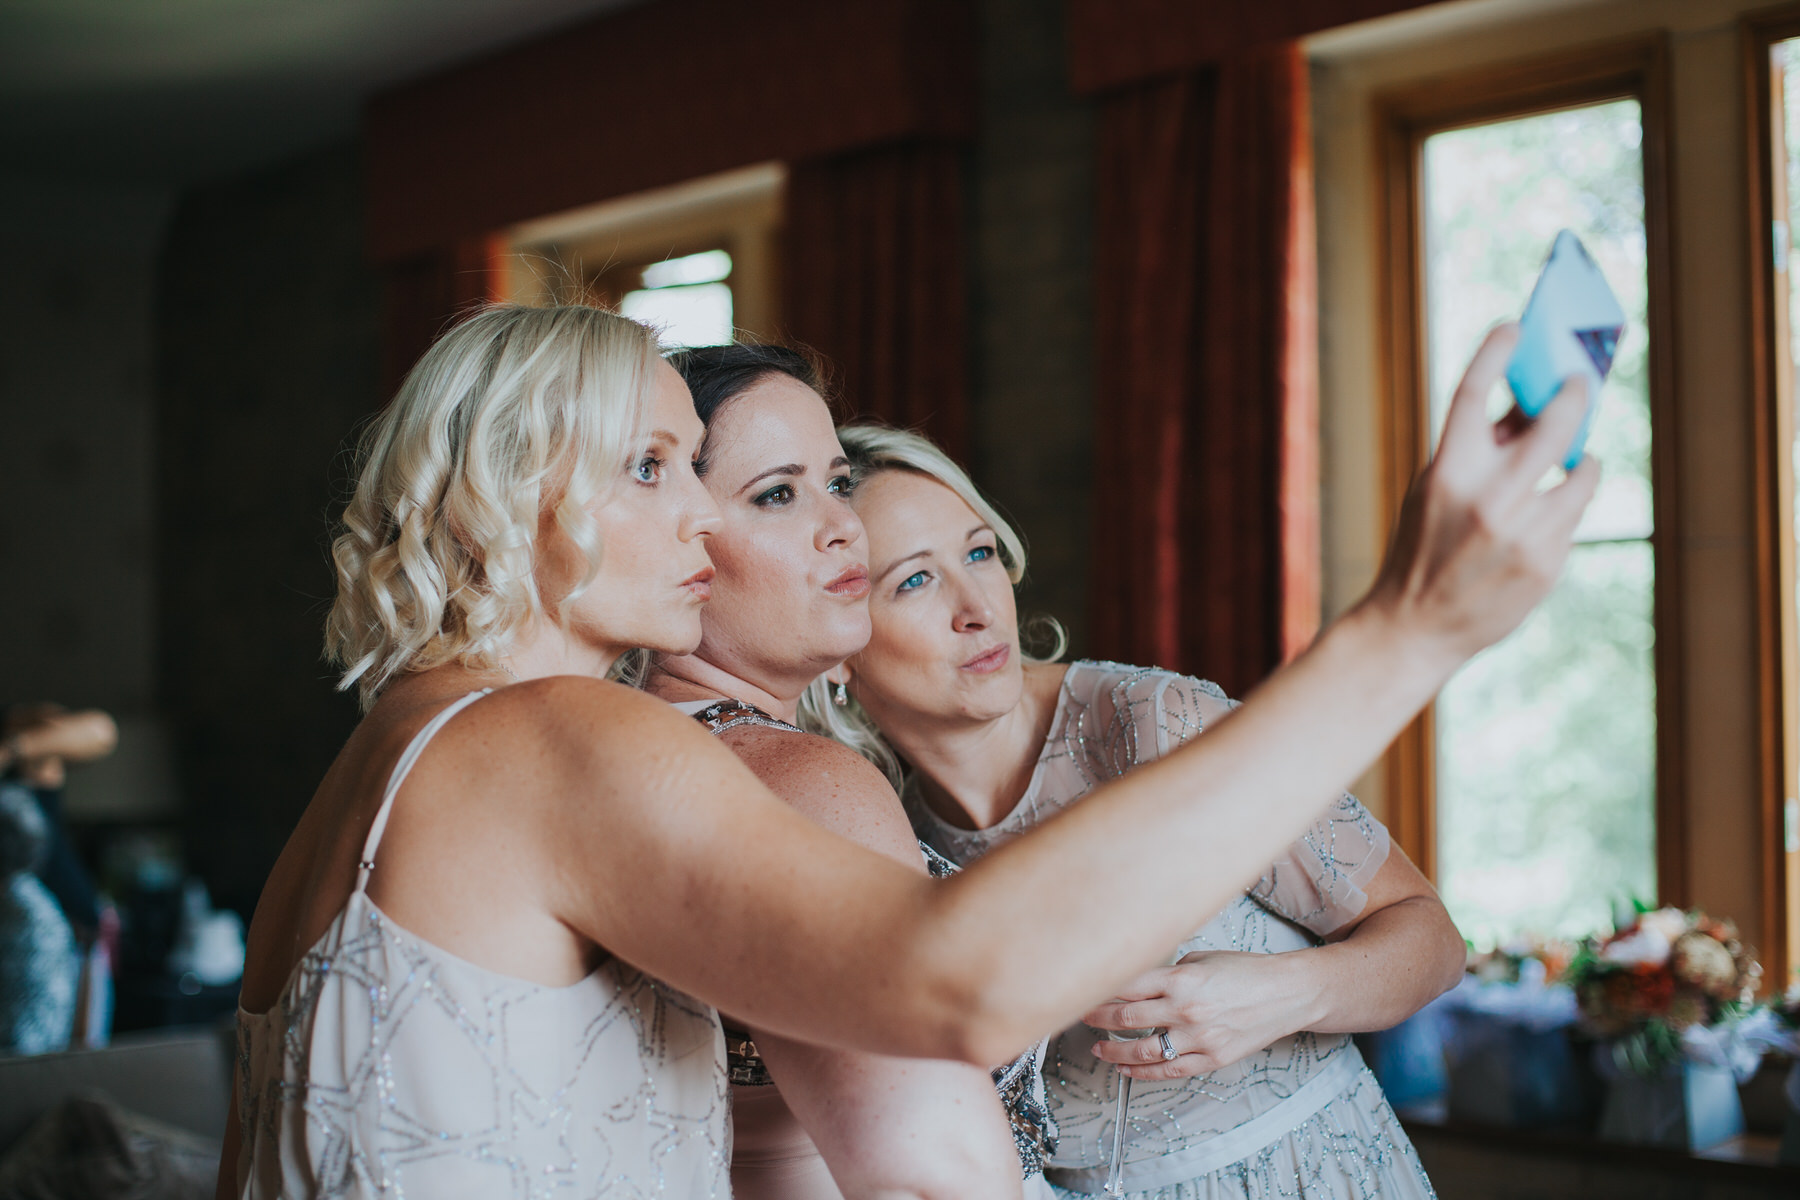 48 bridesmaids duckface selfie wedding reportage.jpg